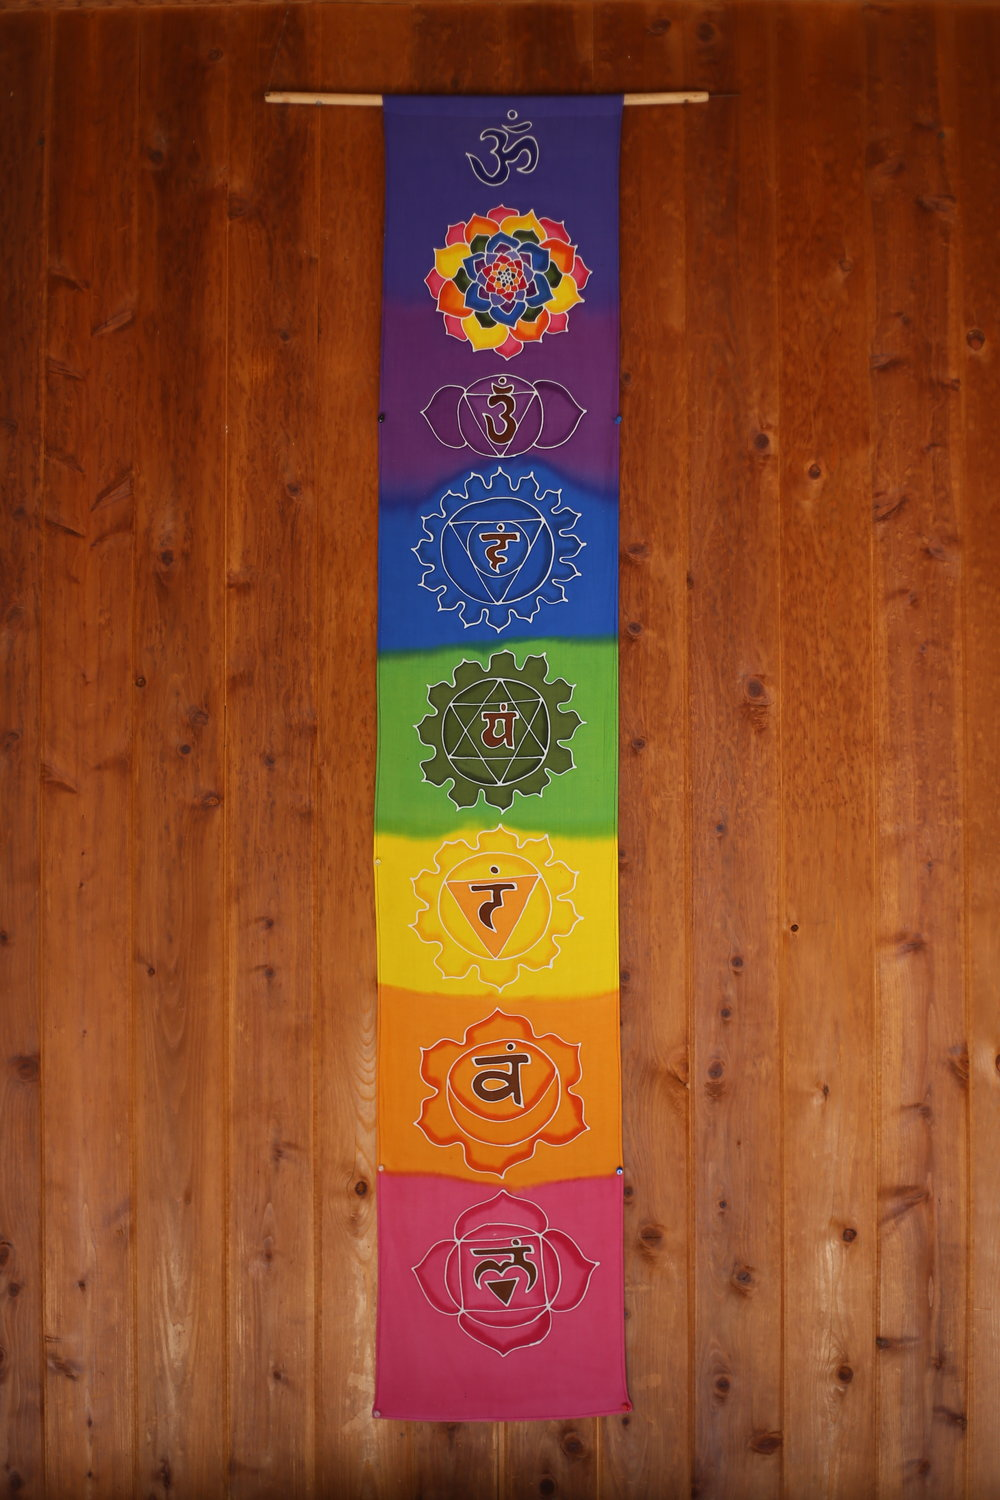 Wall hanging hand painted with the Chakras, in the pavilion of Sedona's peace gardens.